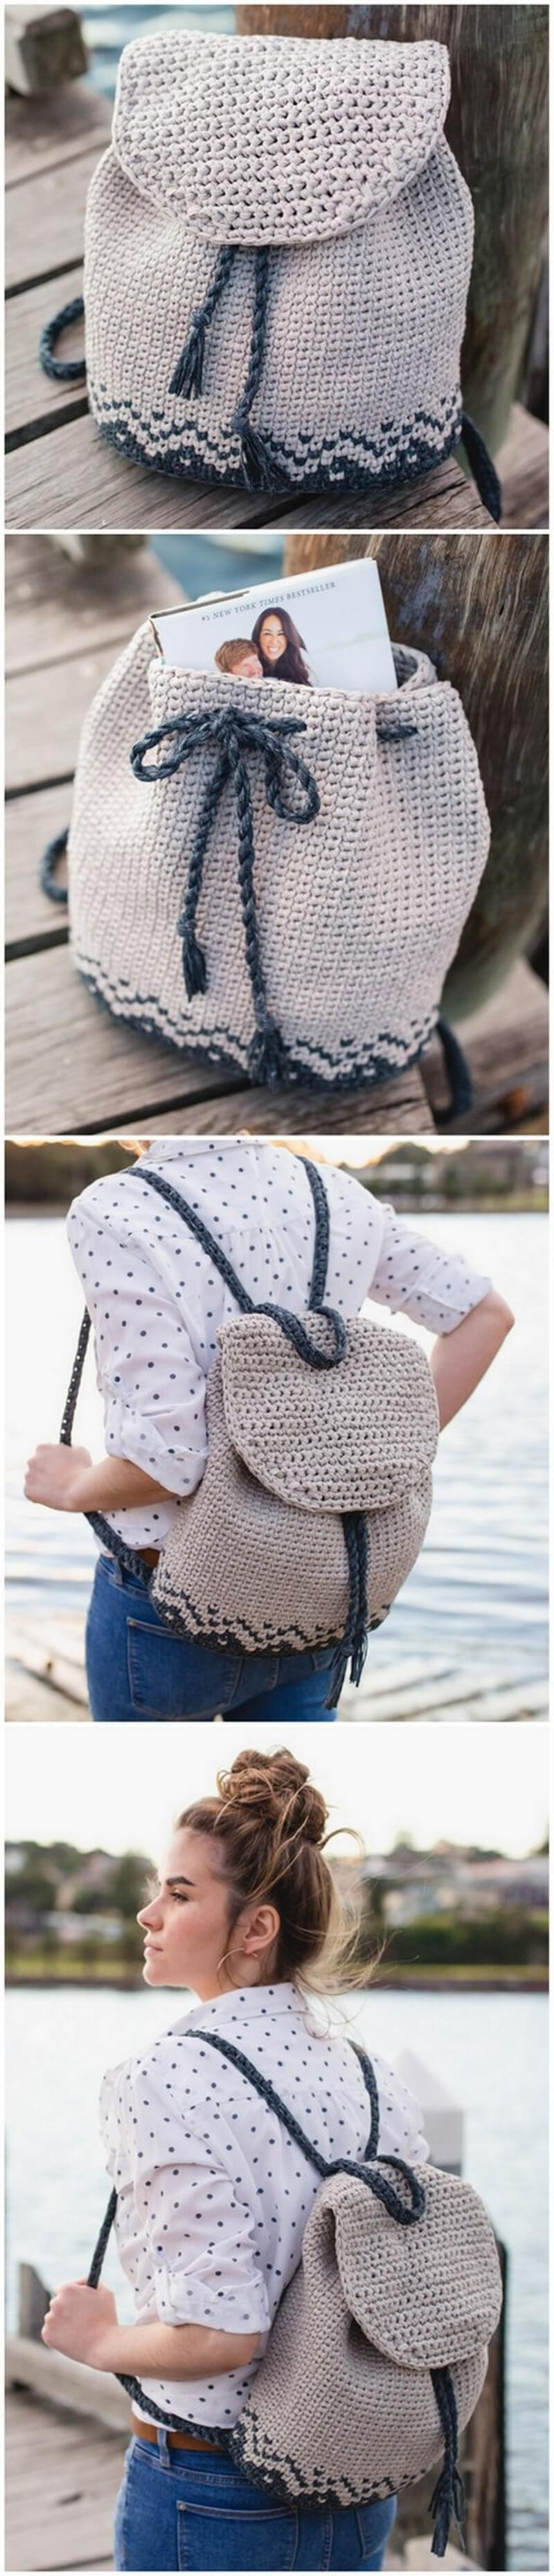 Crochet Bag Pattern (14)